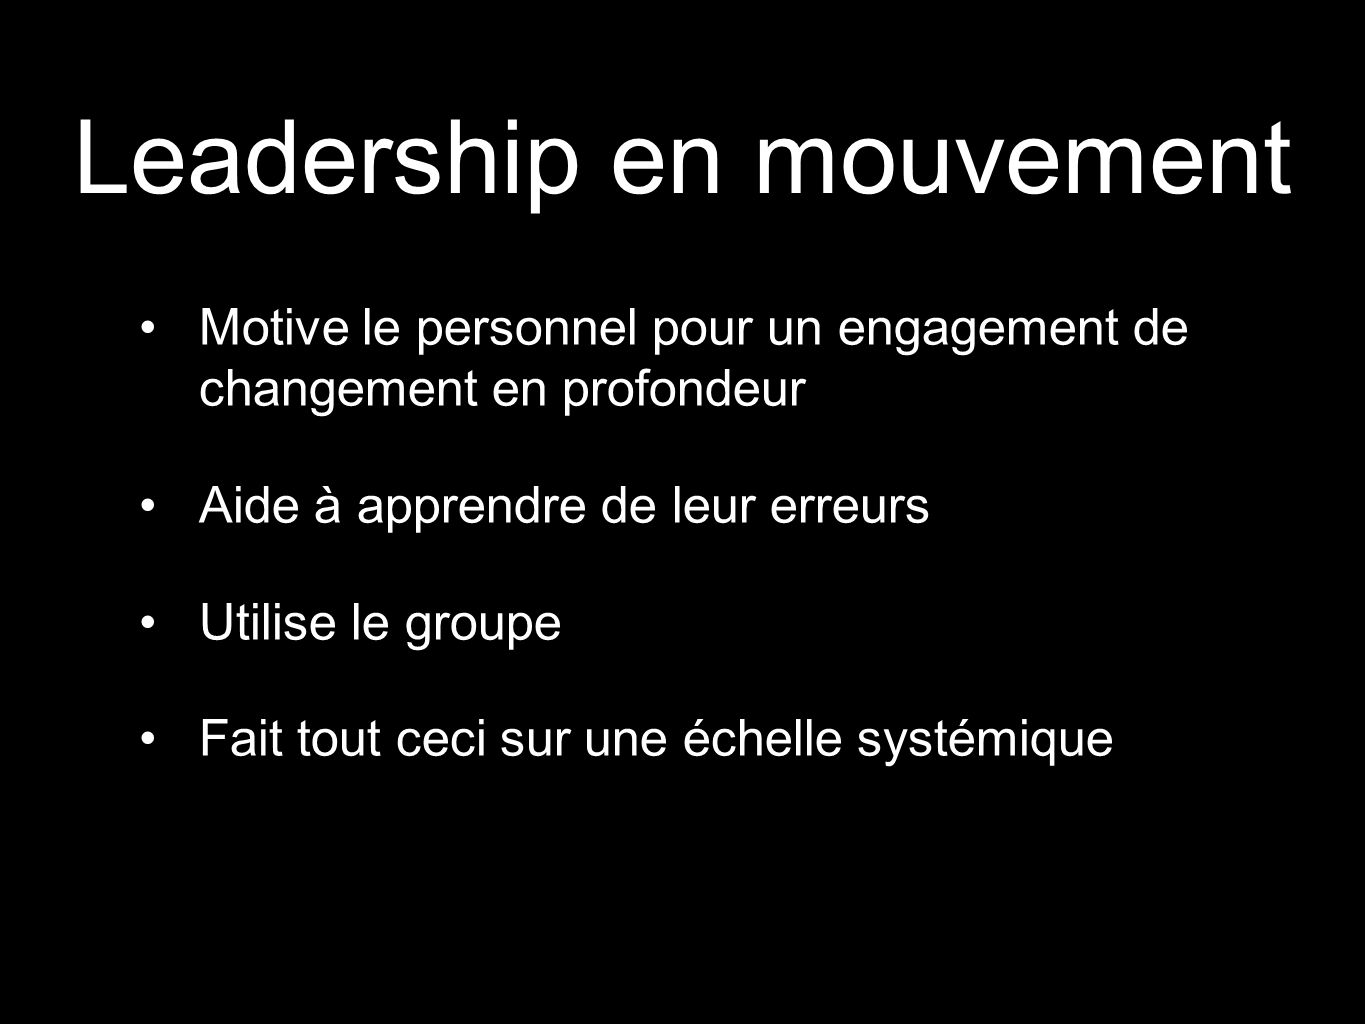 Leadership en mouvement